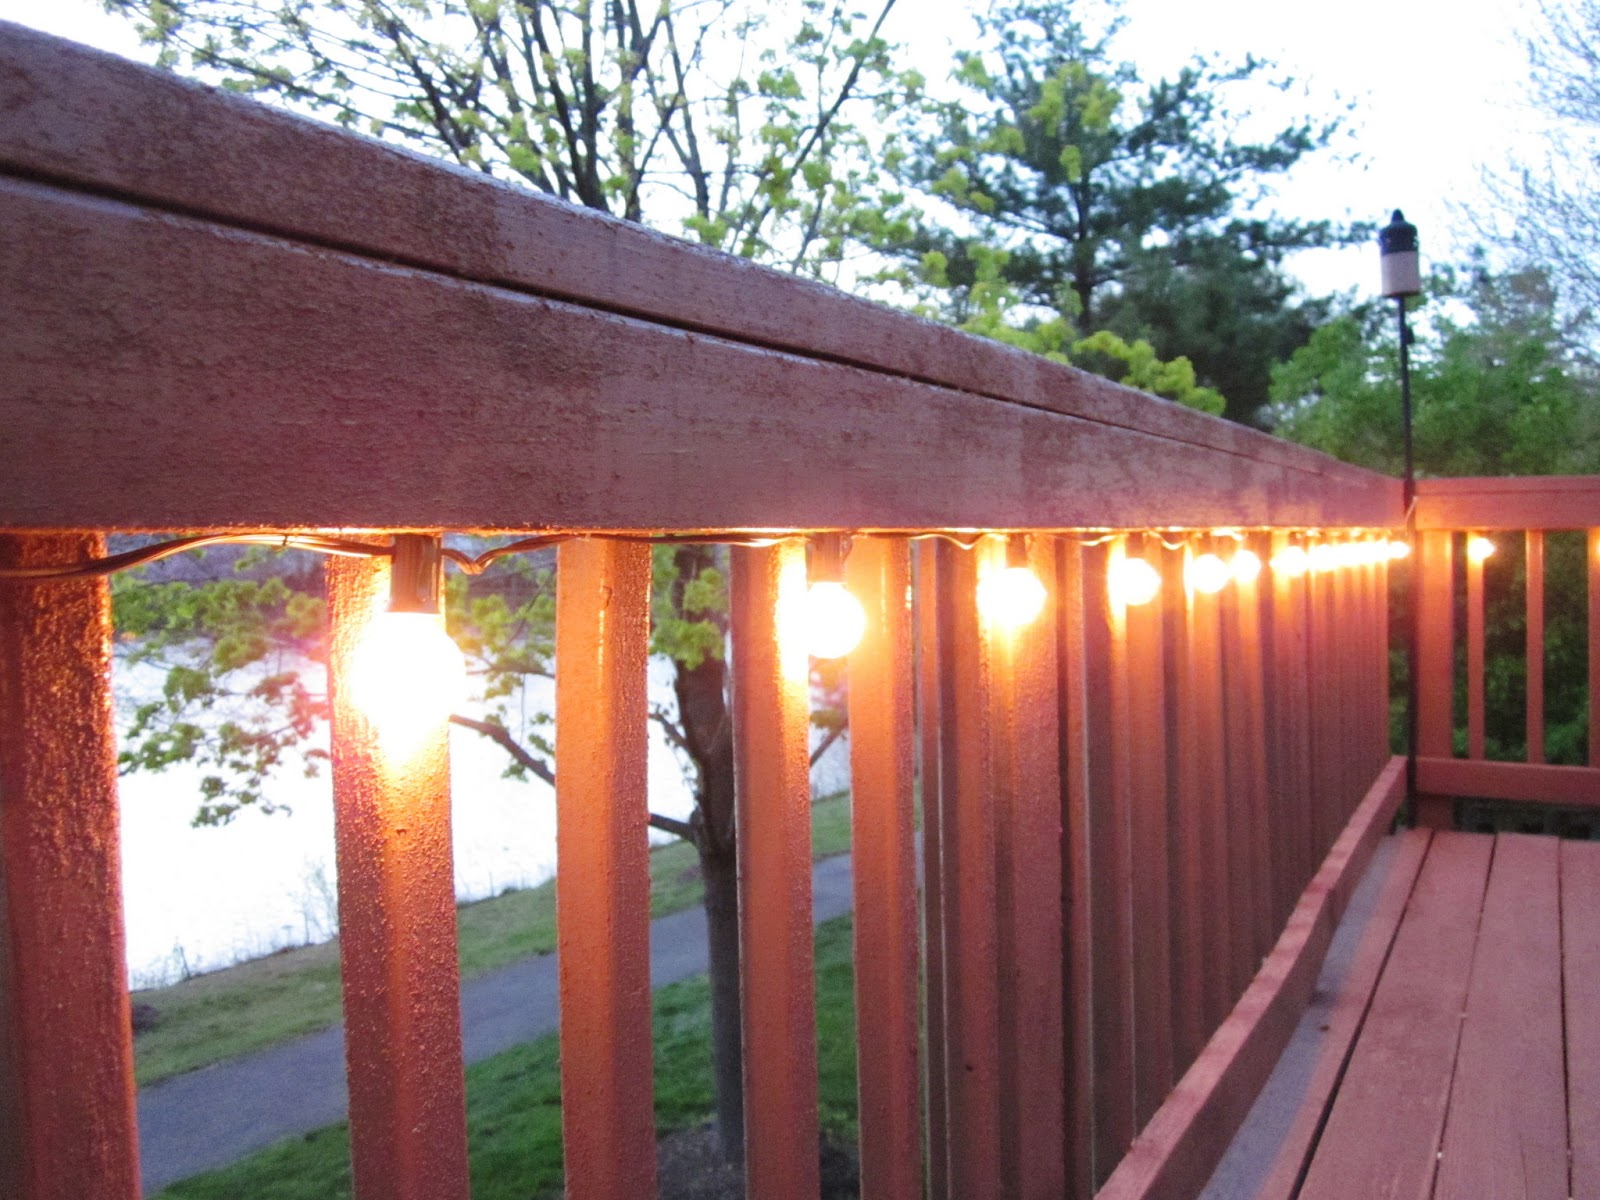 Bonnieprojects lighting the deck - How to use lights to decorate your patio ...